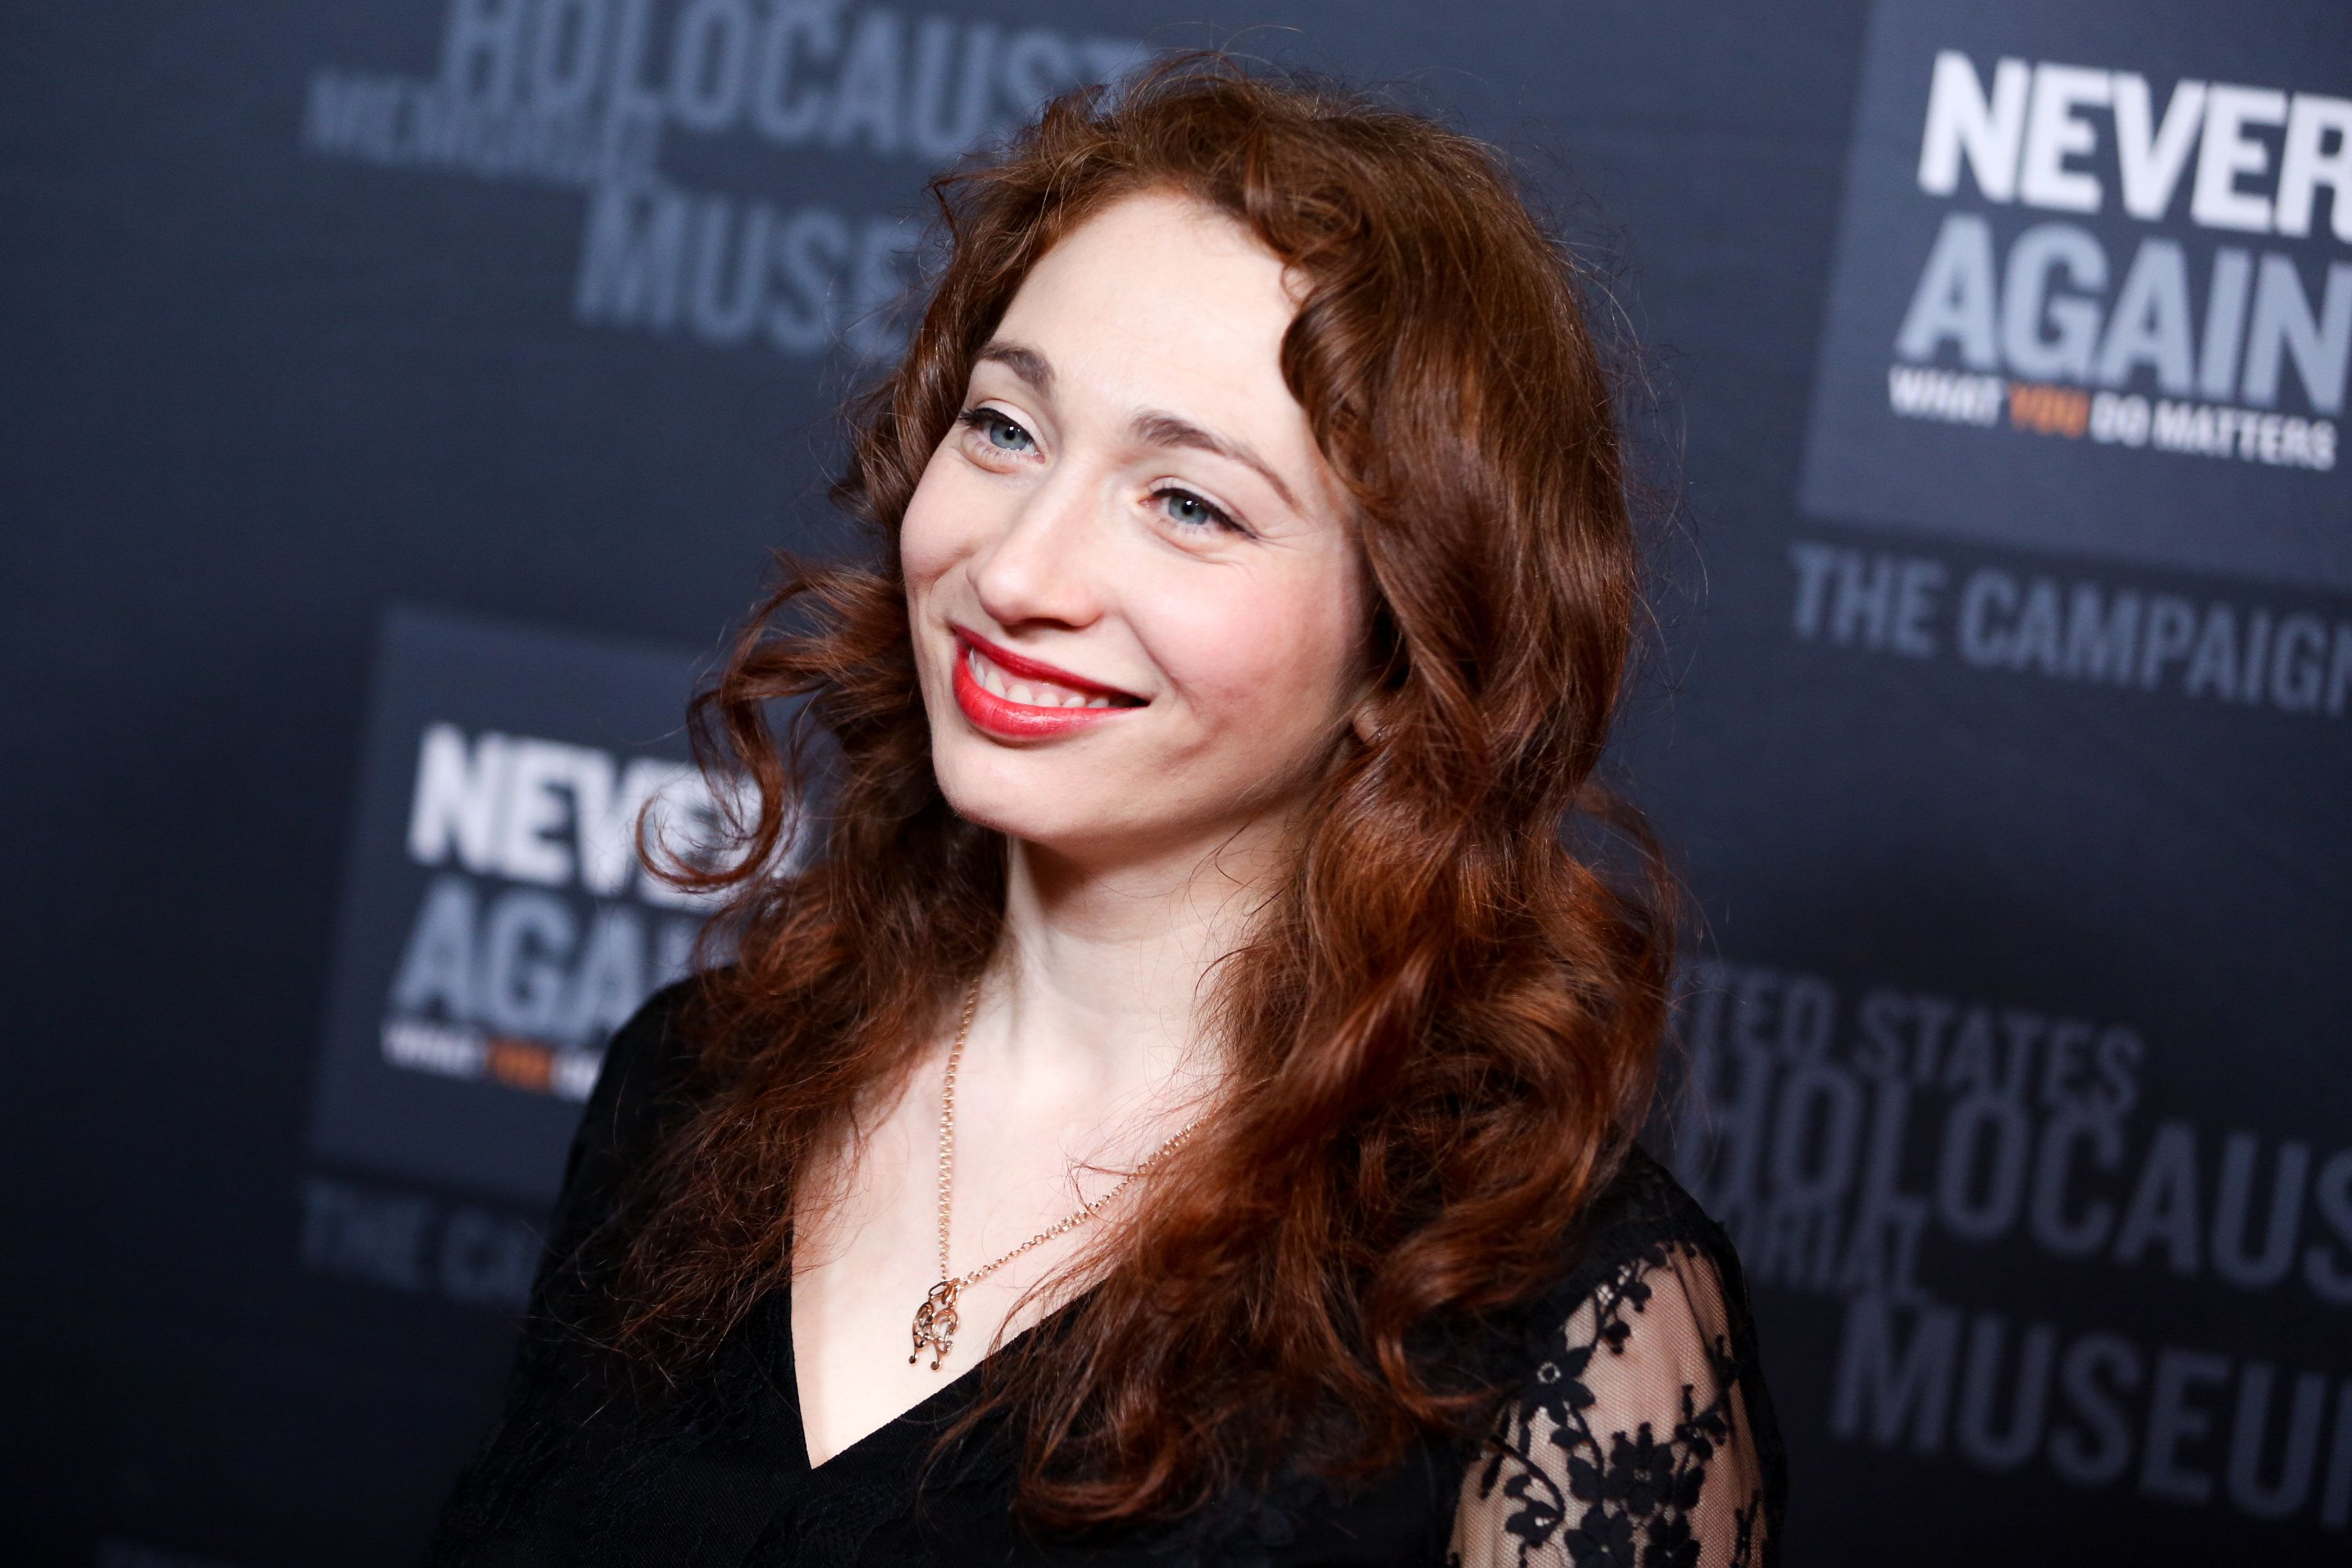 Regina Spektor credited HIAS with helping her and her husband's families settle in the U.S. after fleeing&nbs